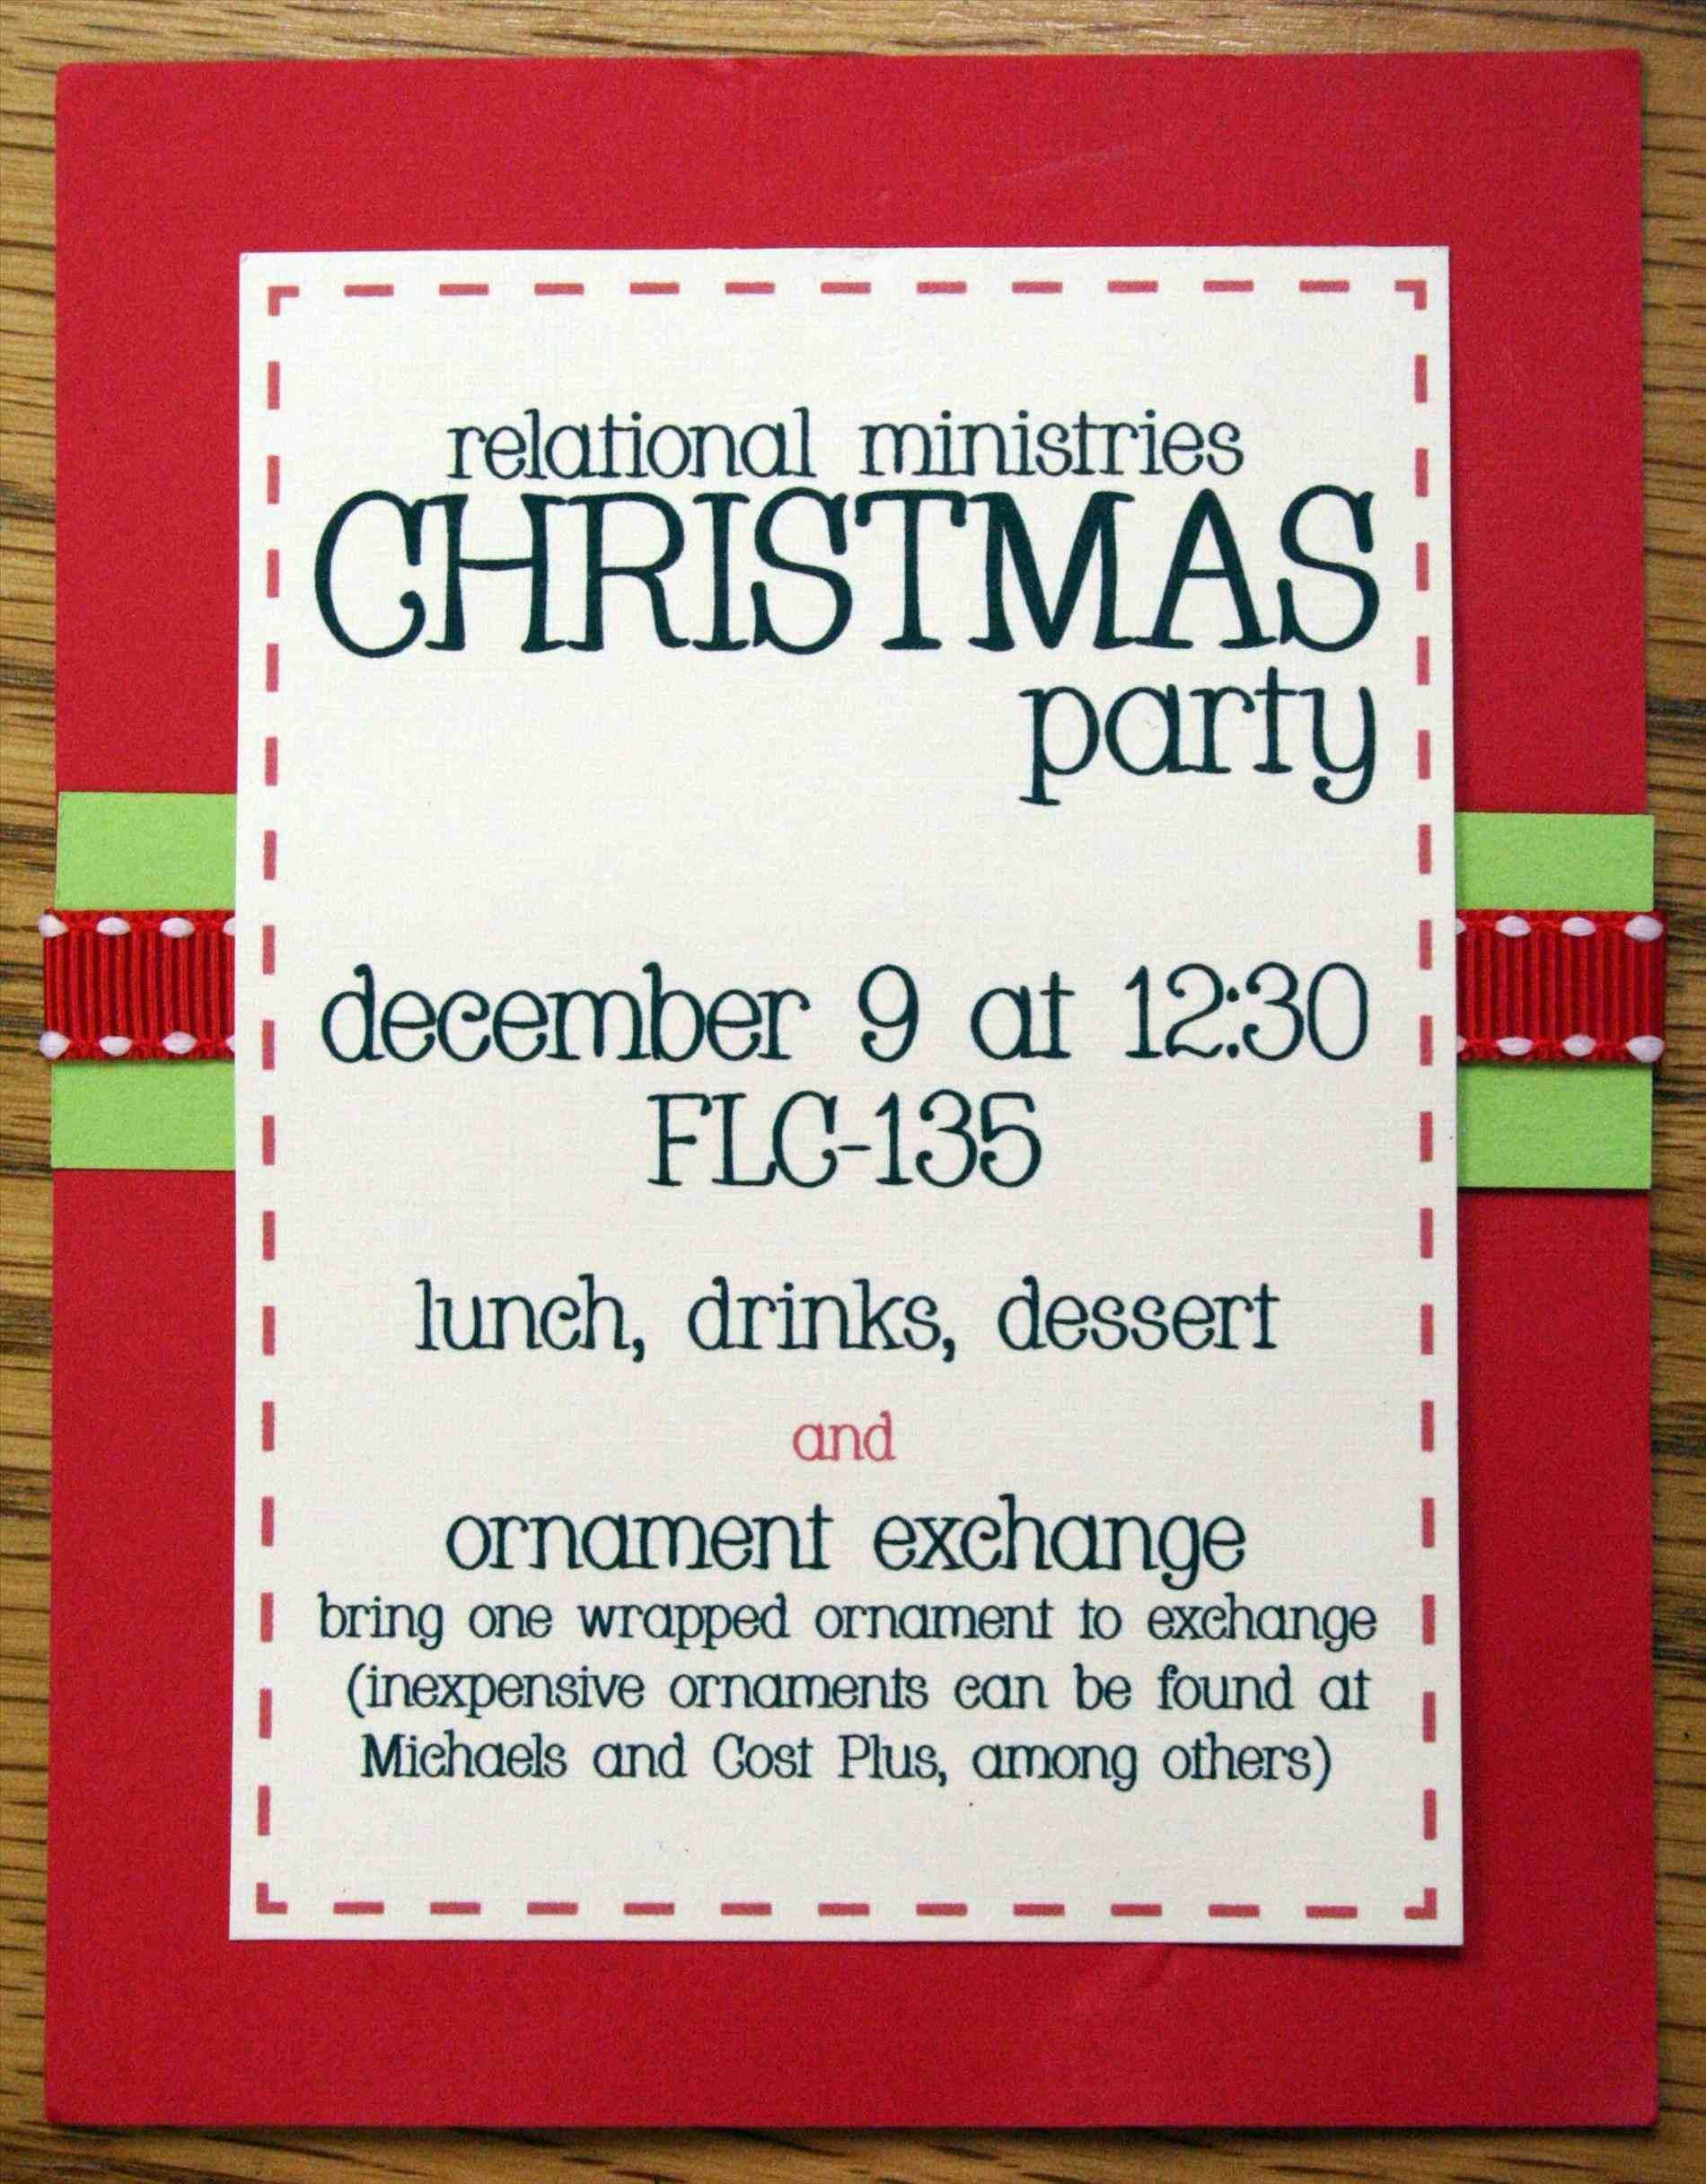 New office christmas party invitation templates free at temasistemi ...